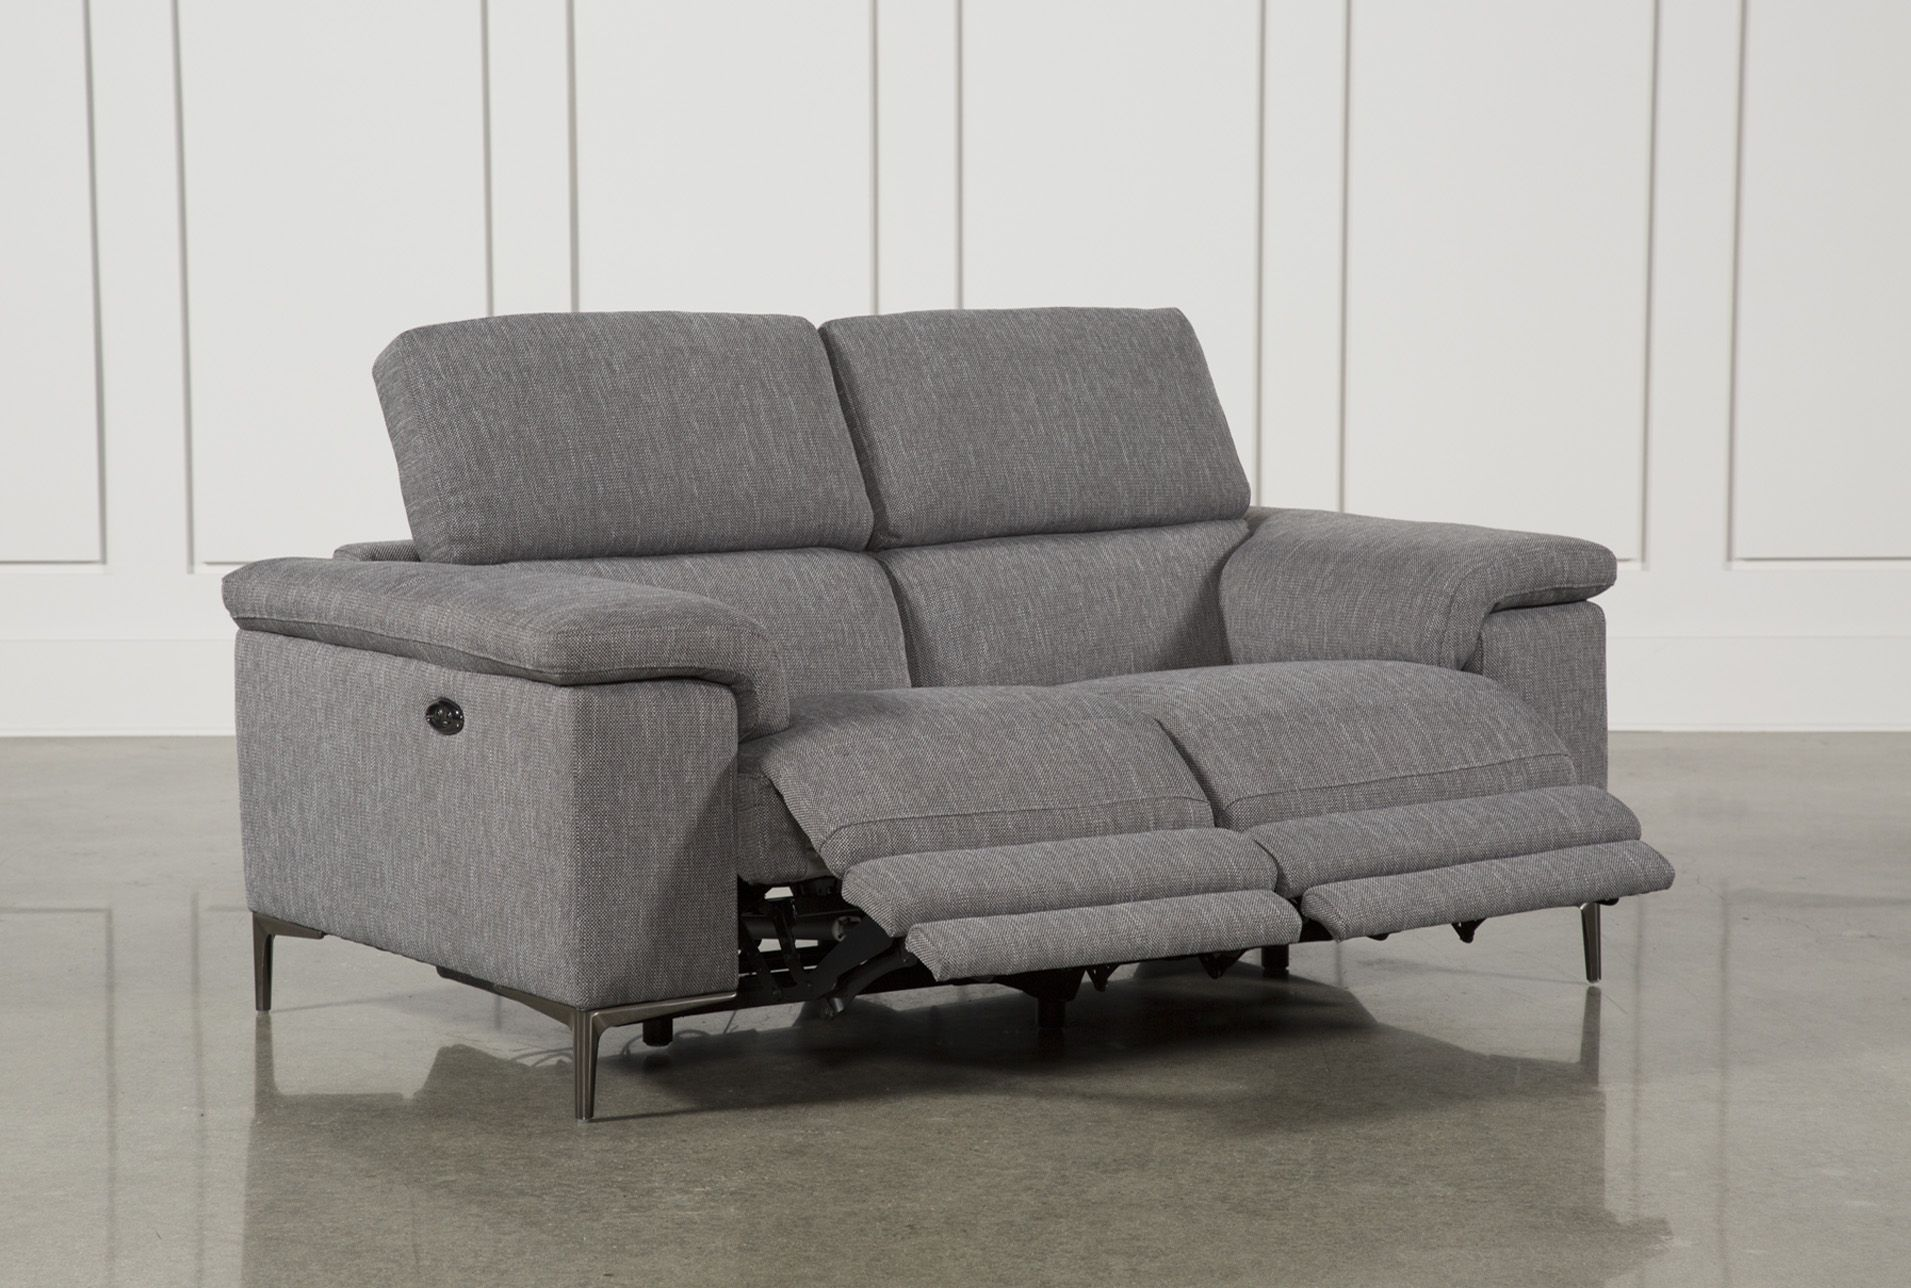 Sofa Natuzzi Electrico Talin Grey Power Reclining Loveseat W Usb In 2019 Products